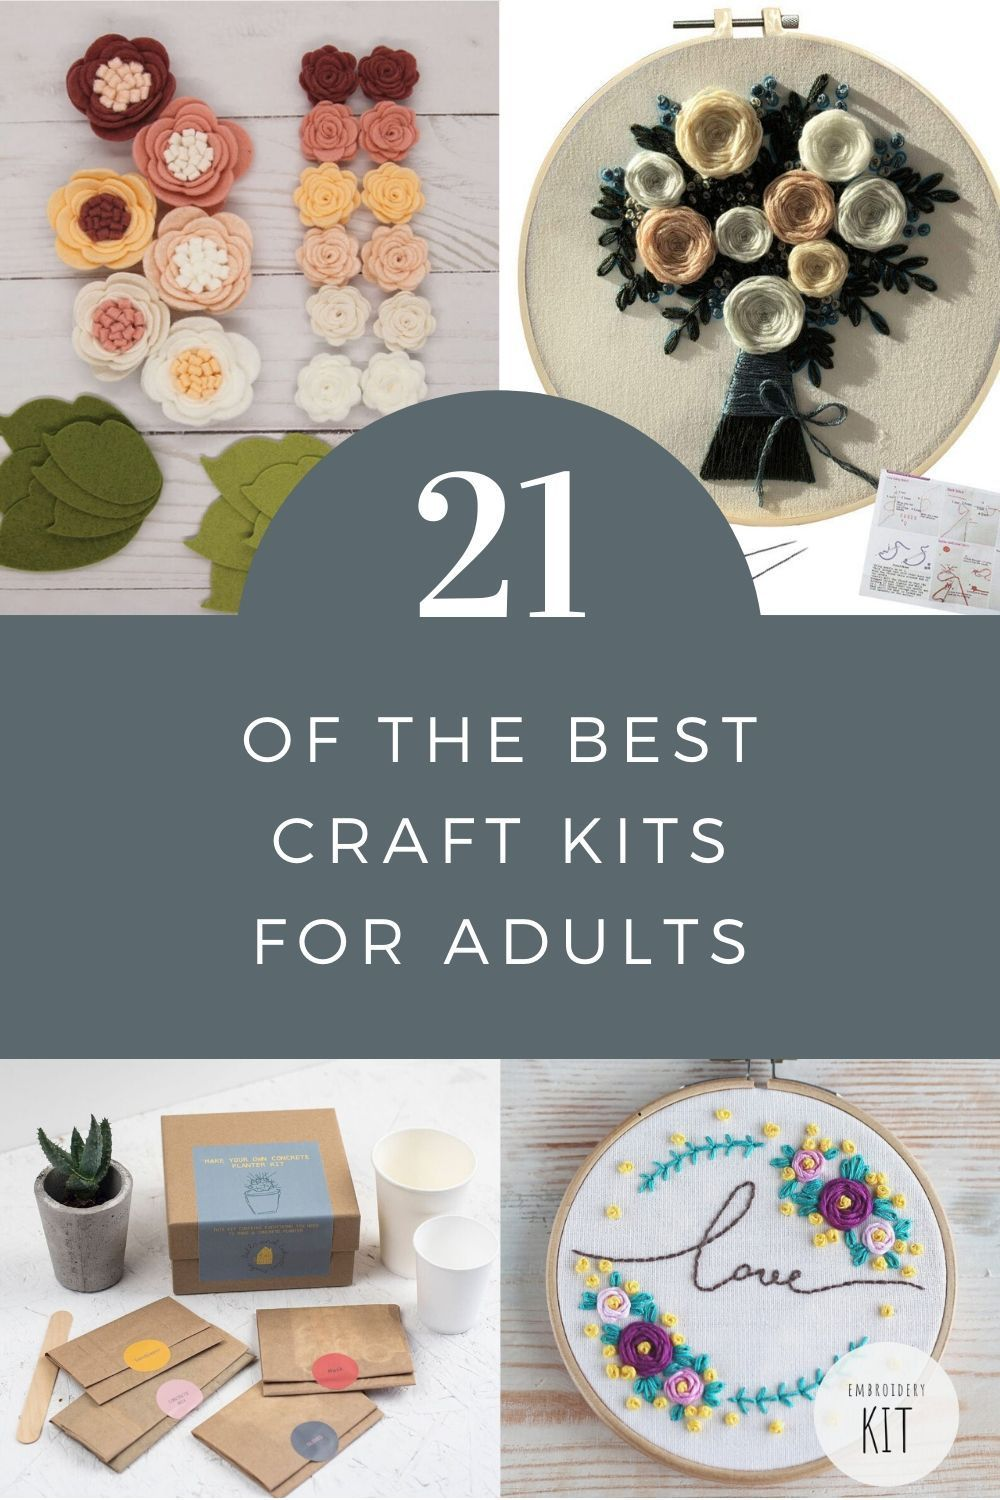 My Favorite At Home Craft Kits For Adults With Supplies For Paper Crafting Sewing Home Decor Jewel In 2020 Craft Kits Craft Activities For Kids Diy Kits For Adults